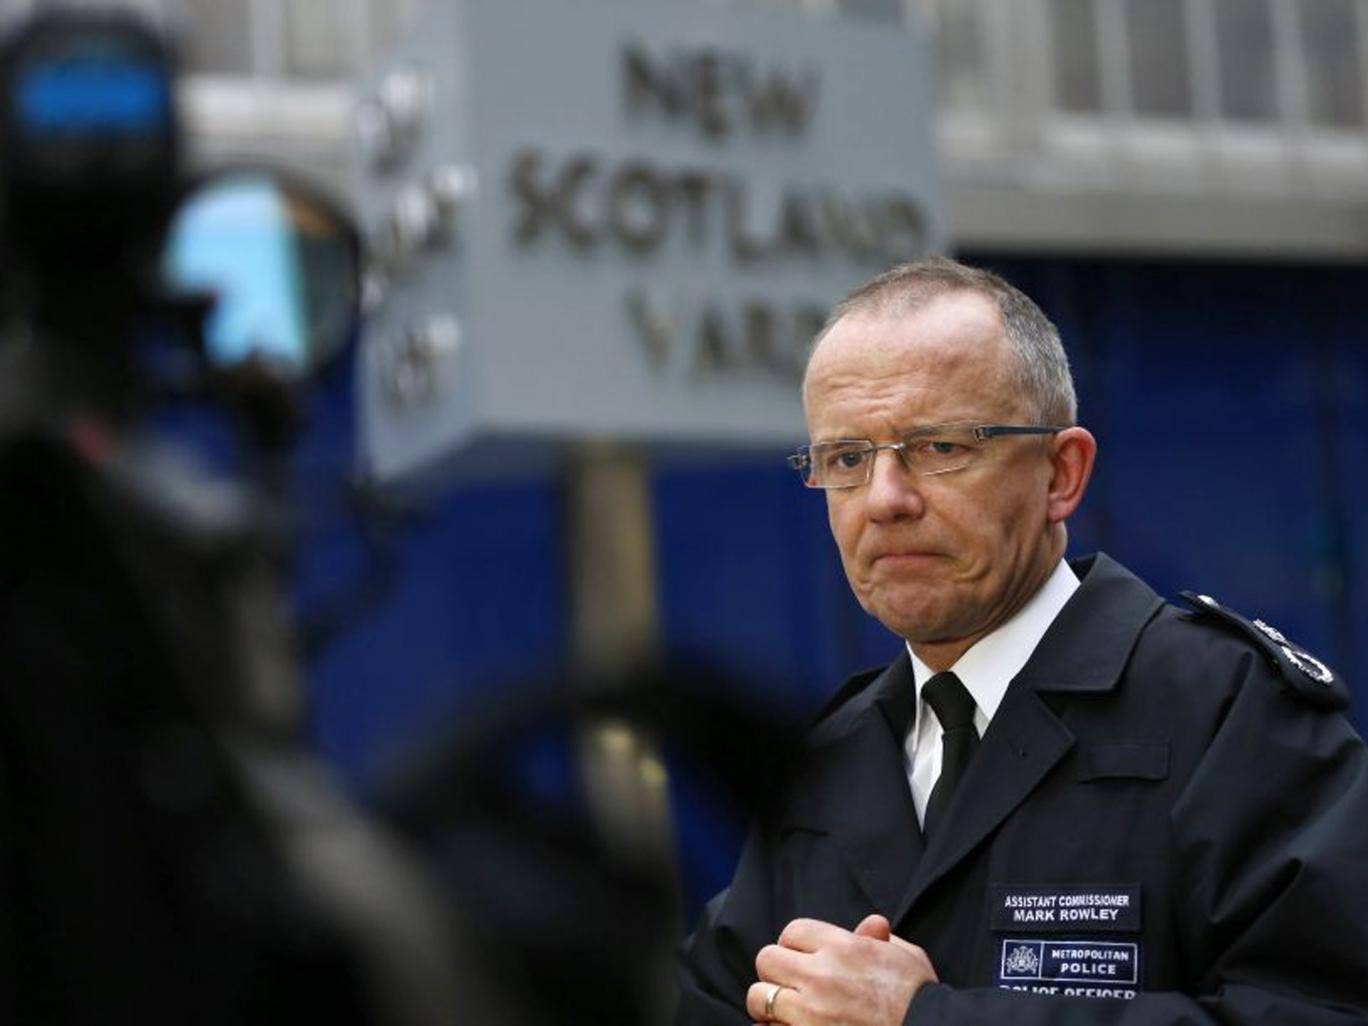 Metropolitan Police Assistant Commissioner Mark Rowley speaks to the media outside New Scotland Yard on Thursday